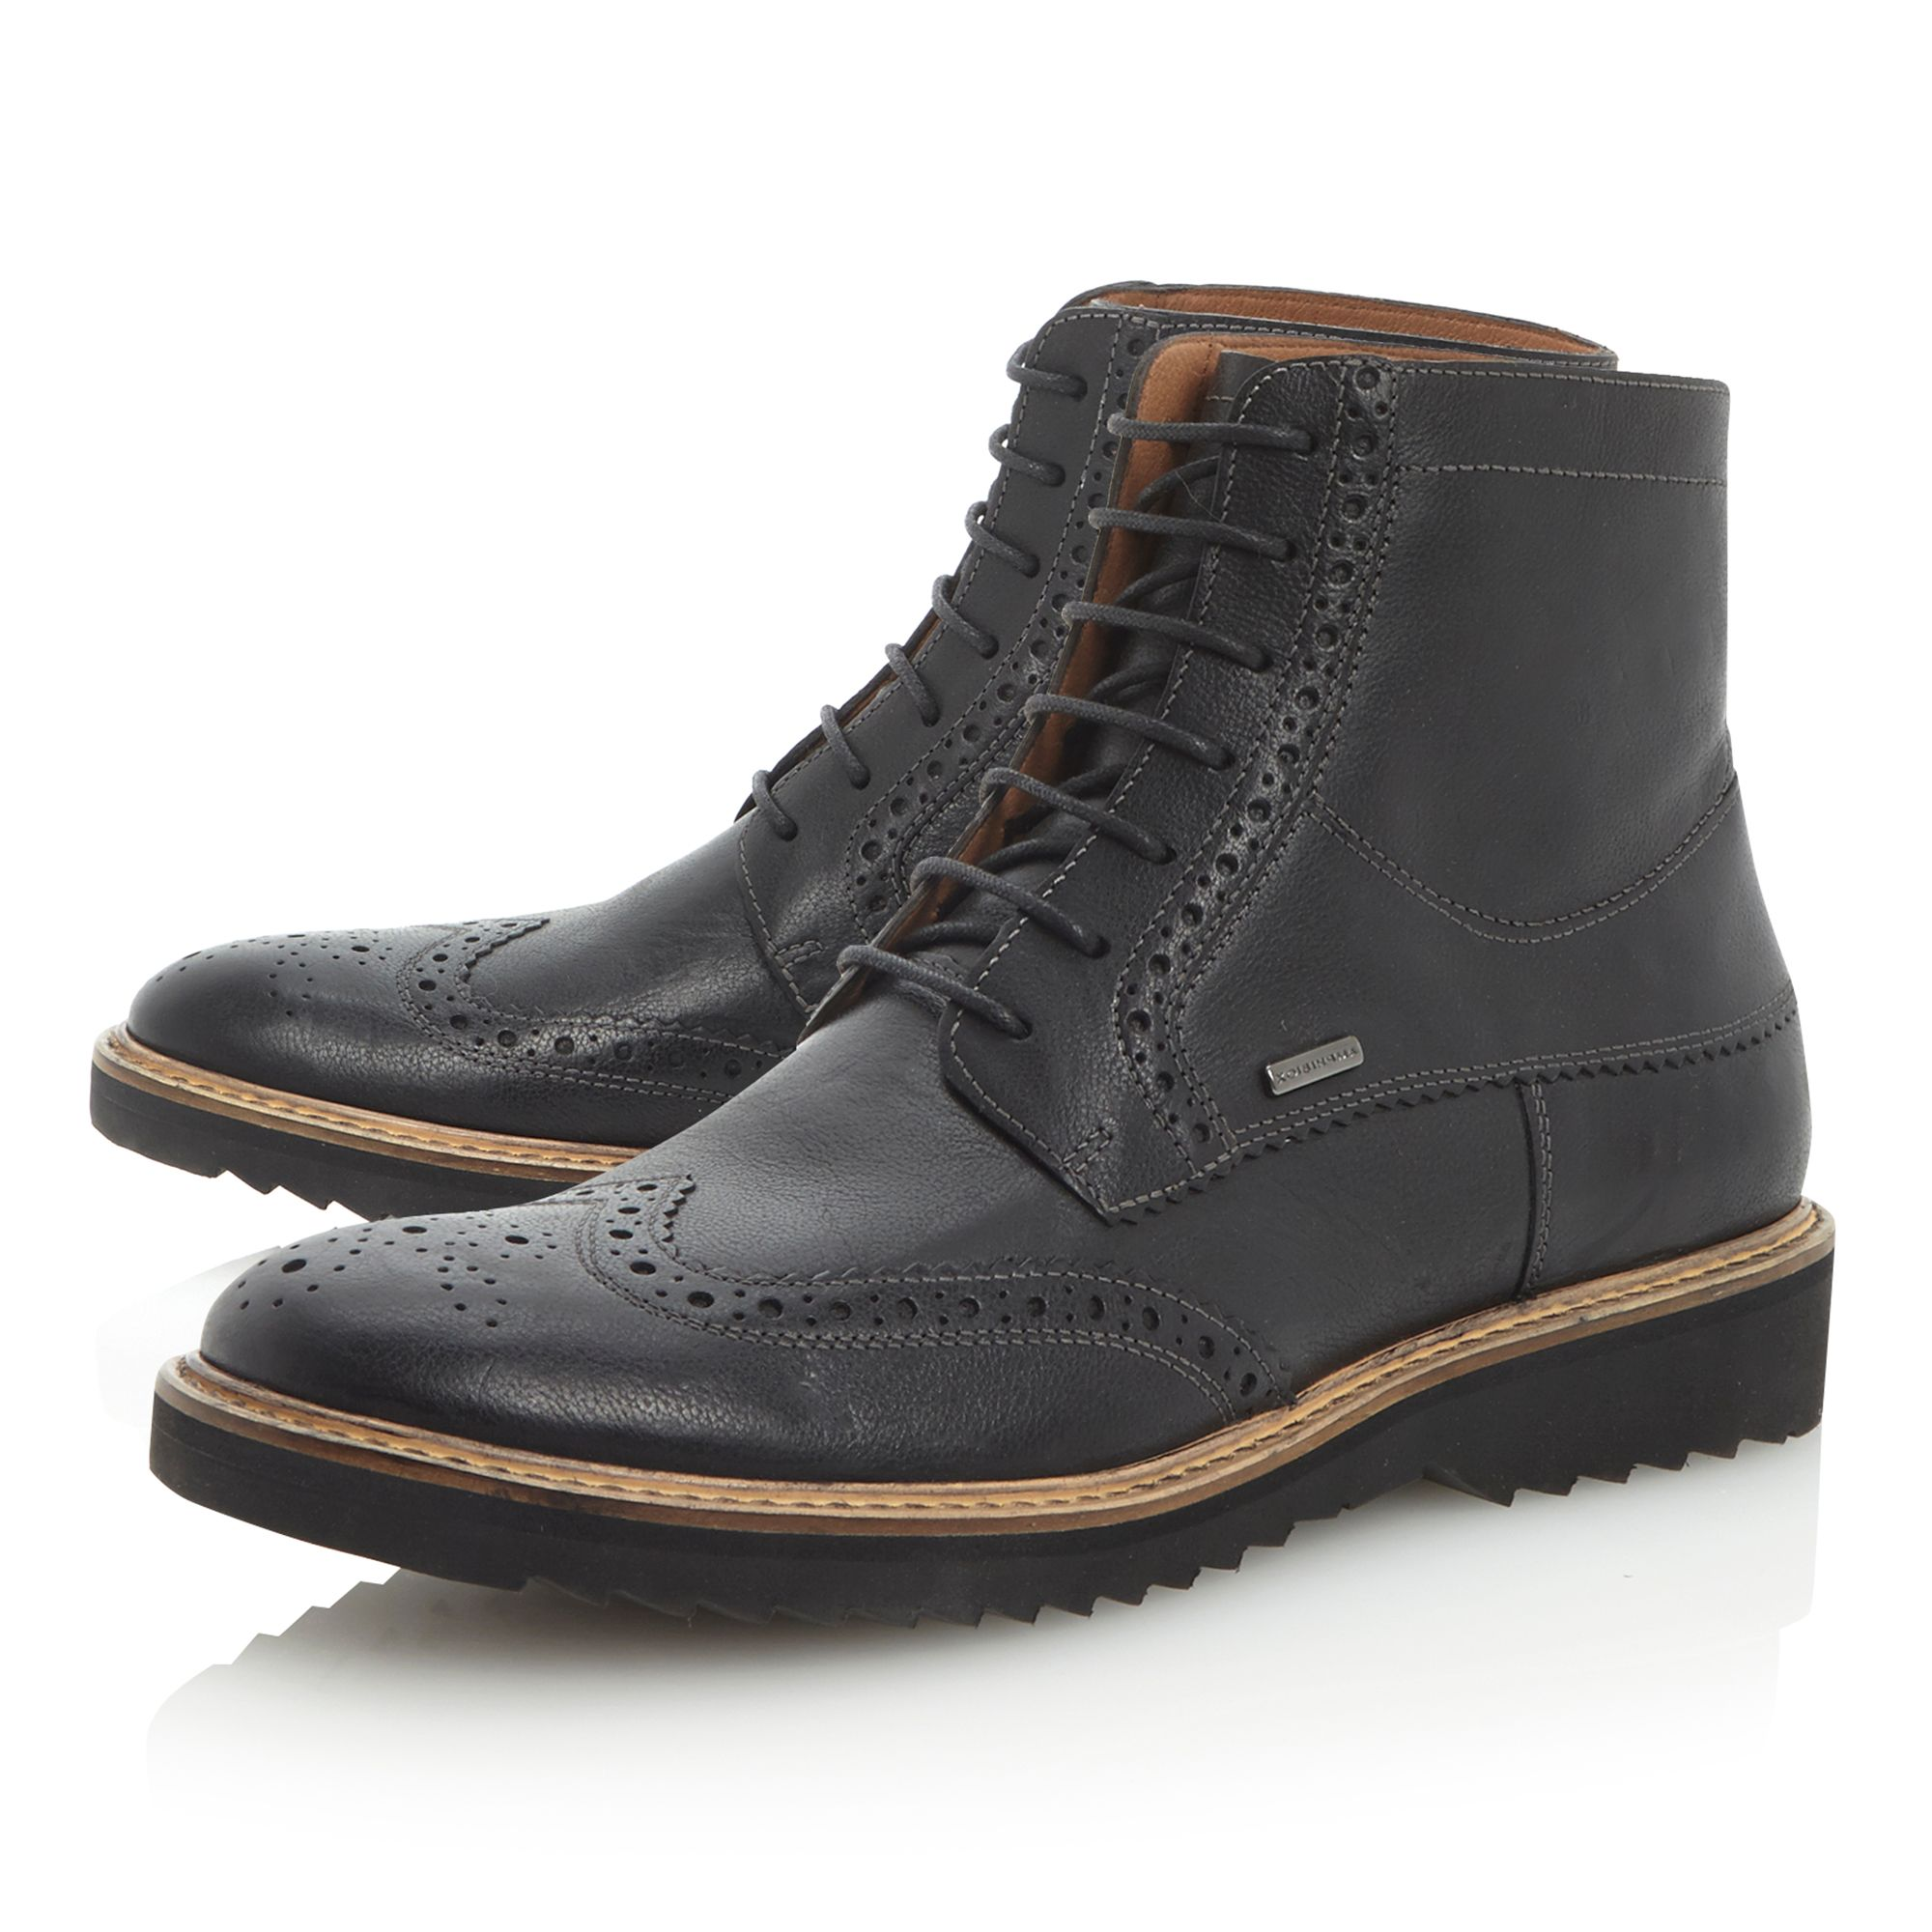 Chester Abx U34 wedge brogue boot